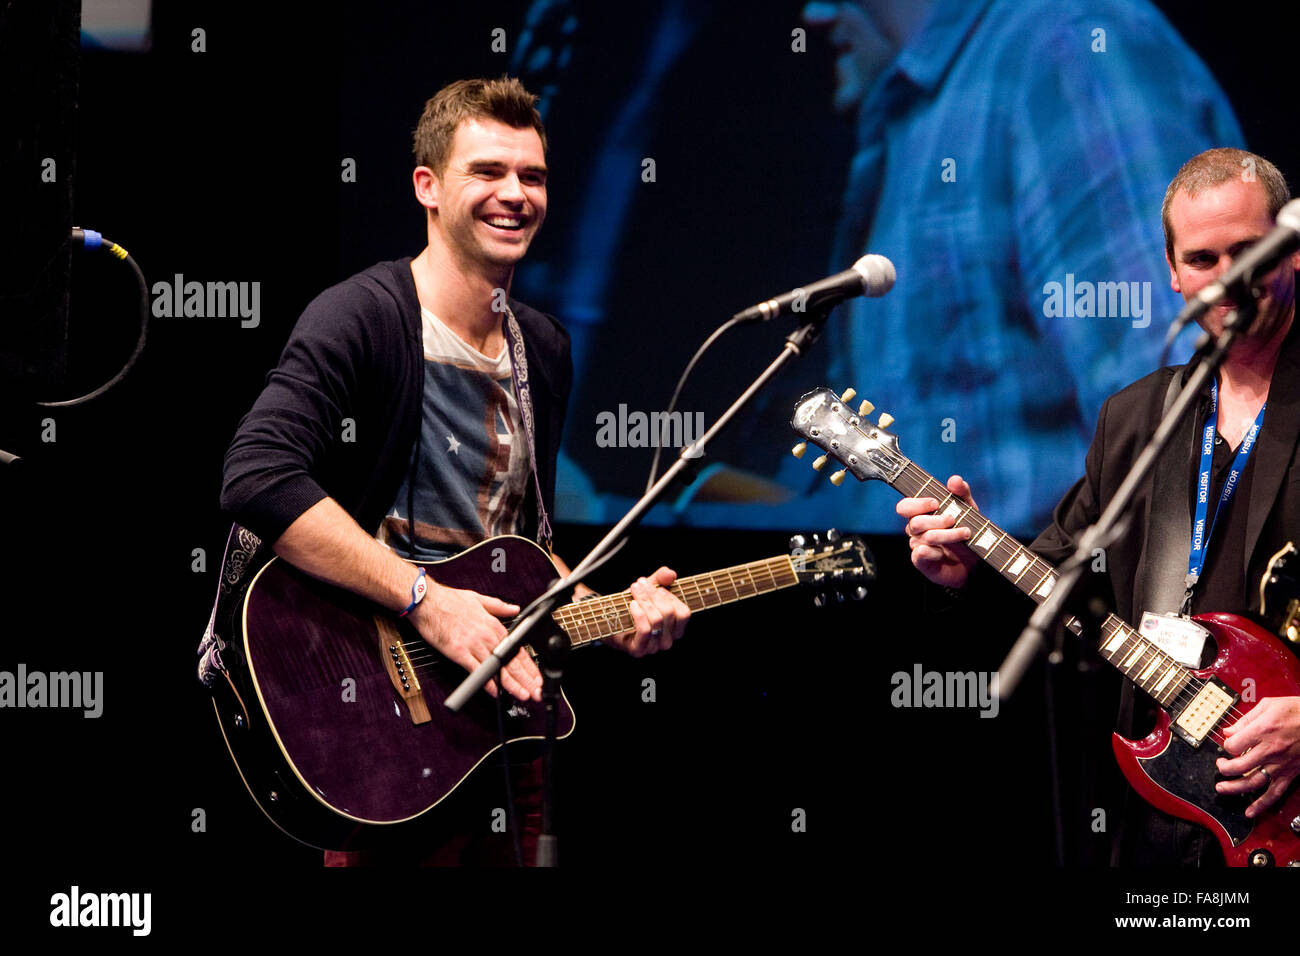 BBC Radio 5 Live Octoberfest in Sheffield Thursday James Anderson plays guitar - Stock Image